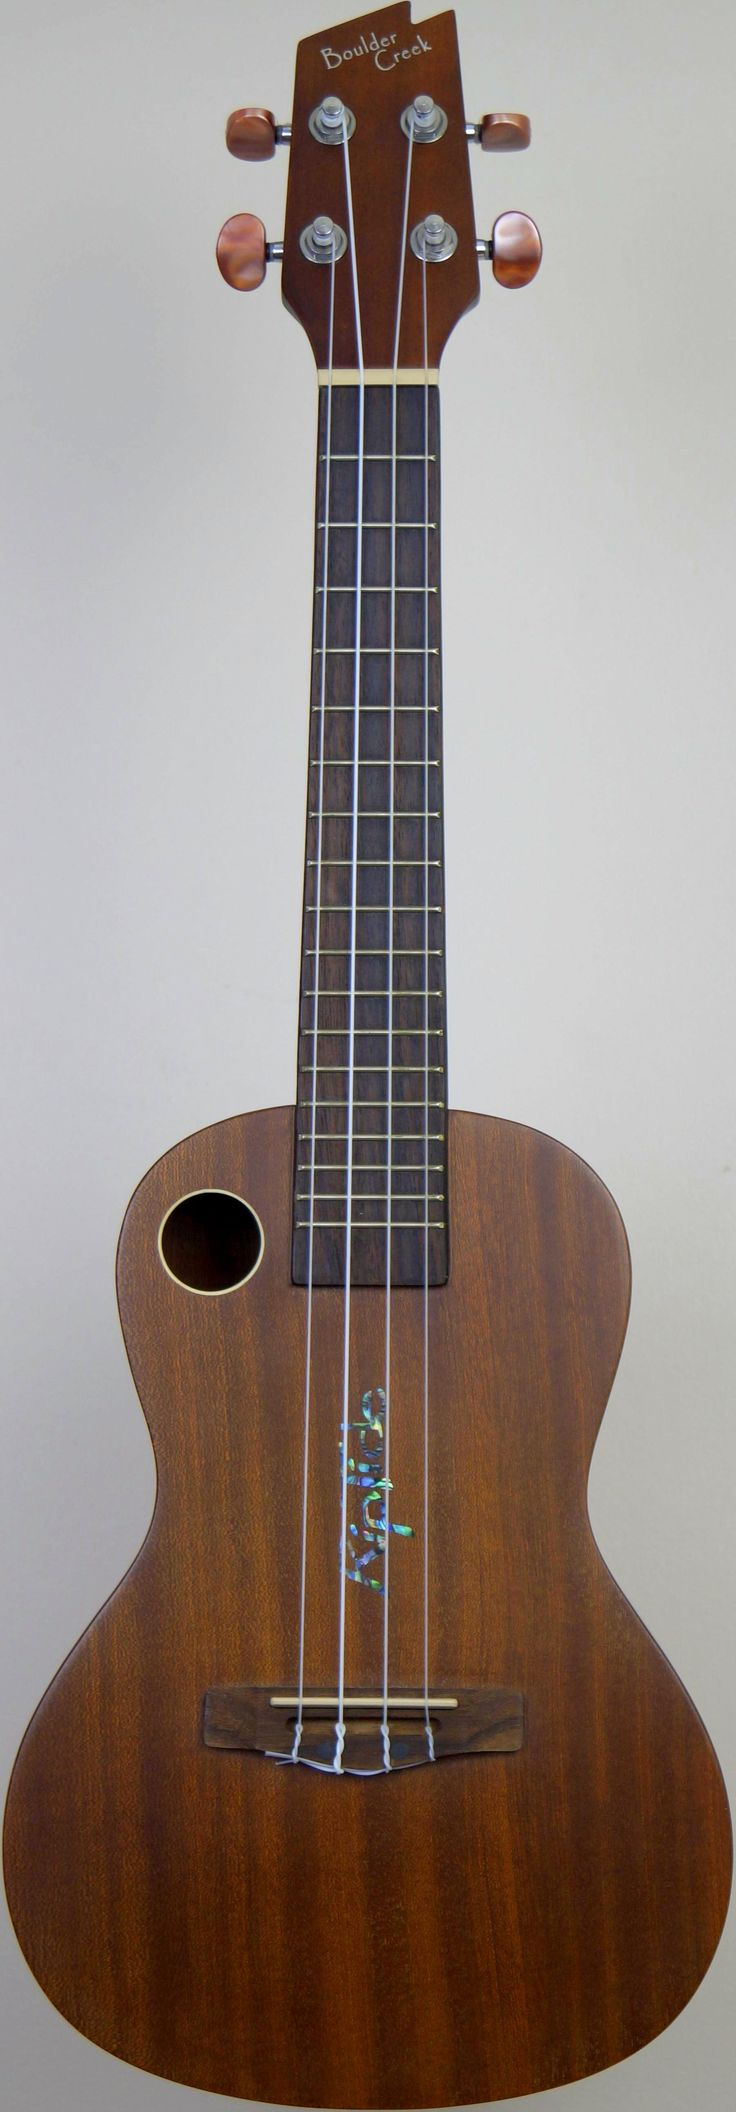 129 best guitar chords images on pinterest guitar guitar my old style boulder creekmahogany concert at ukulele cornerlardys ukulele of the day 2013 hexwebz Images